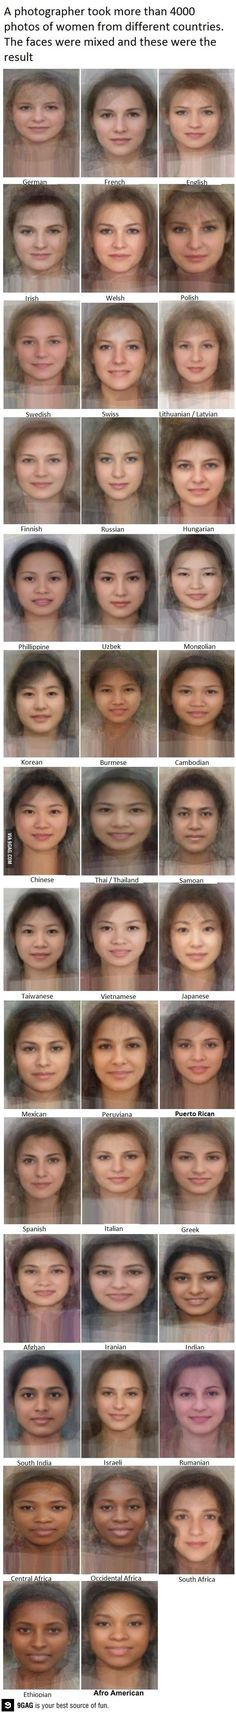 Average face from women from different countries Non è incredibile come siano TUTTE belle?